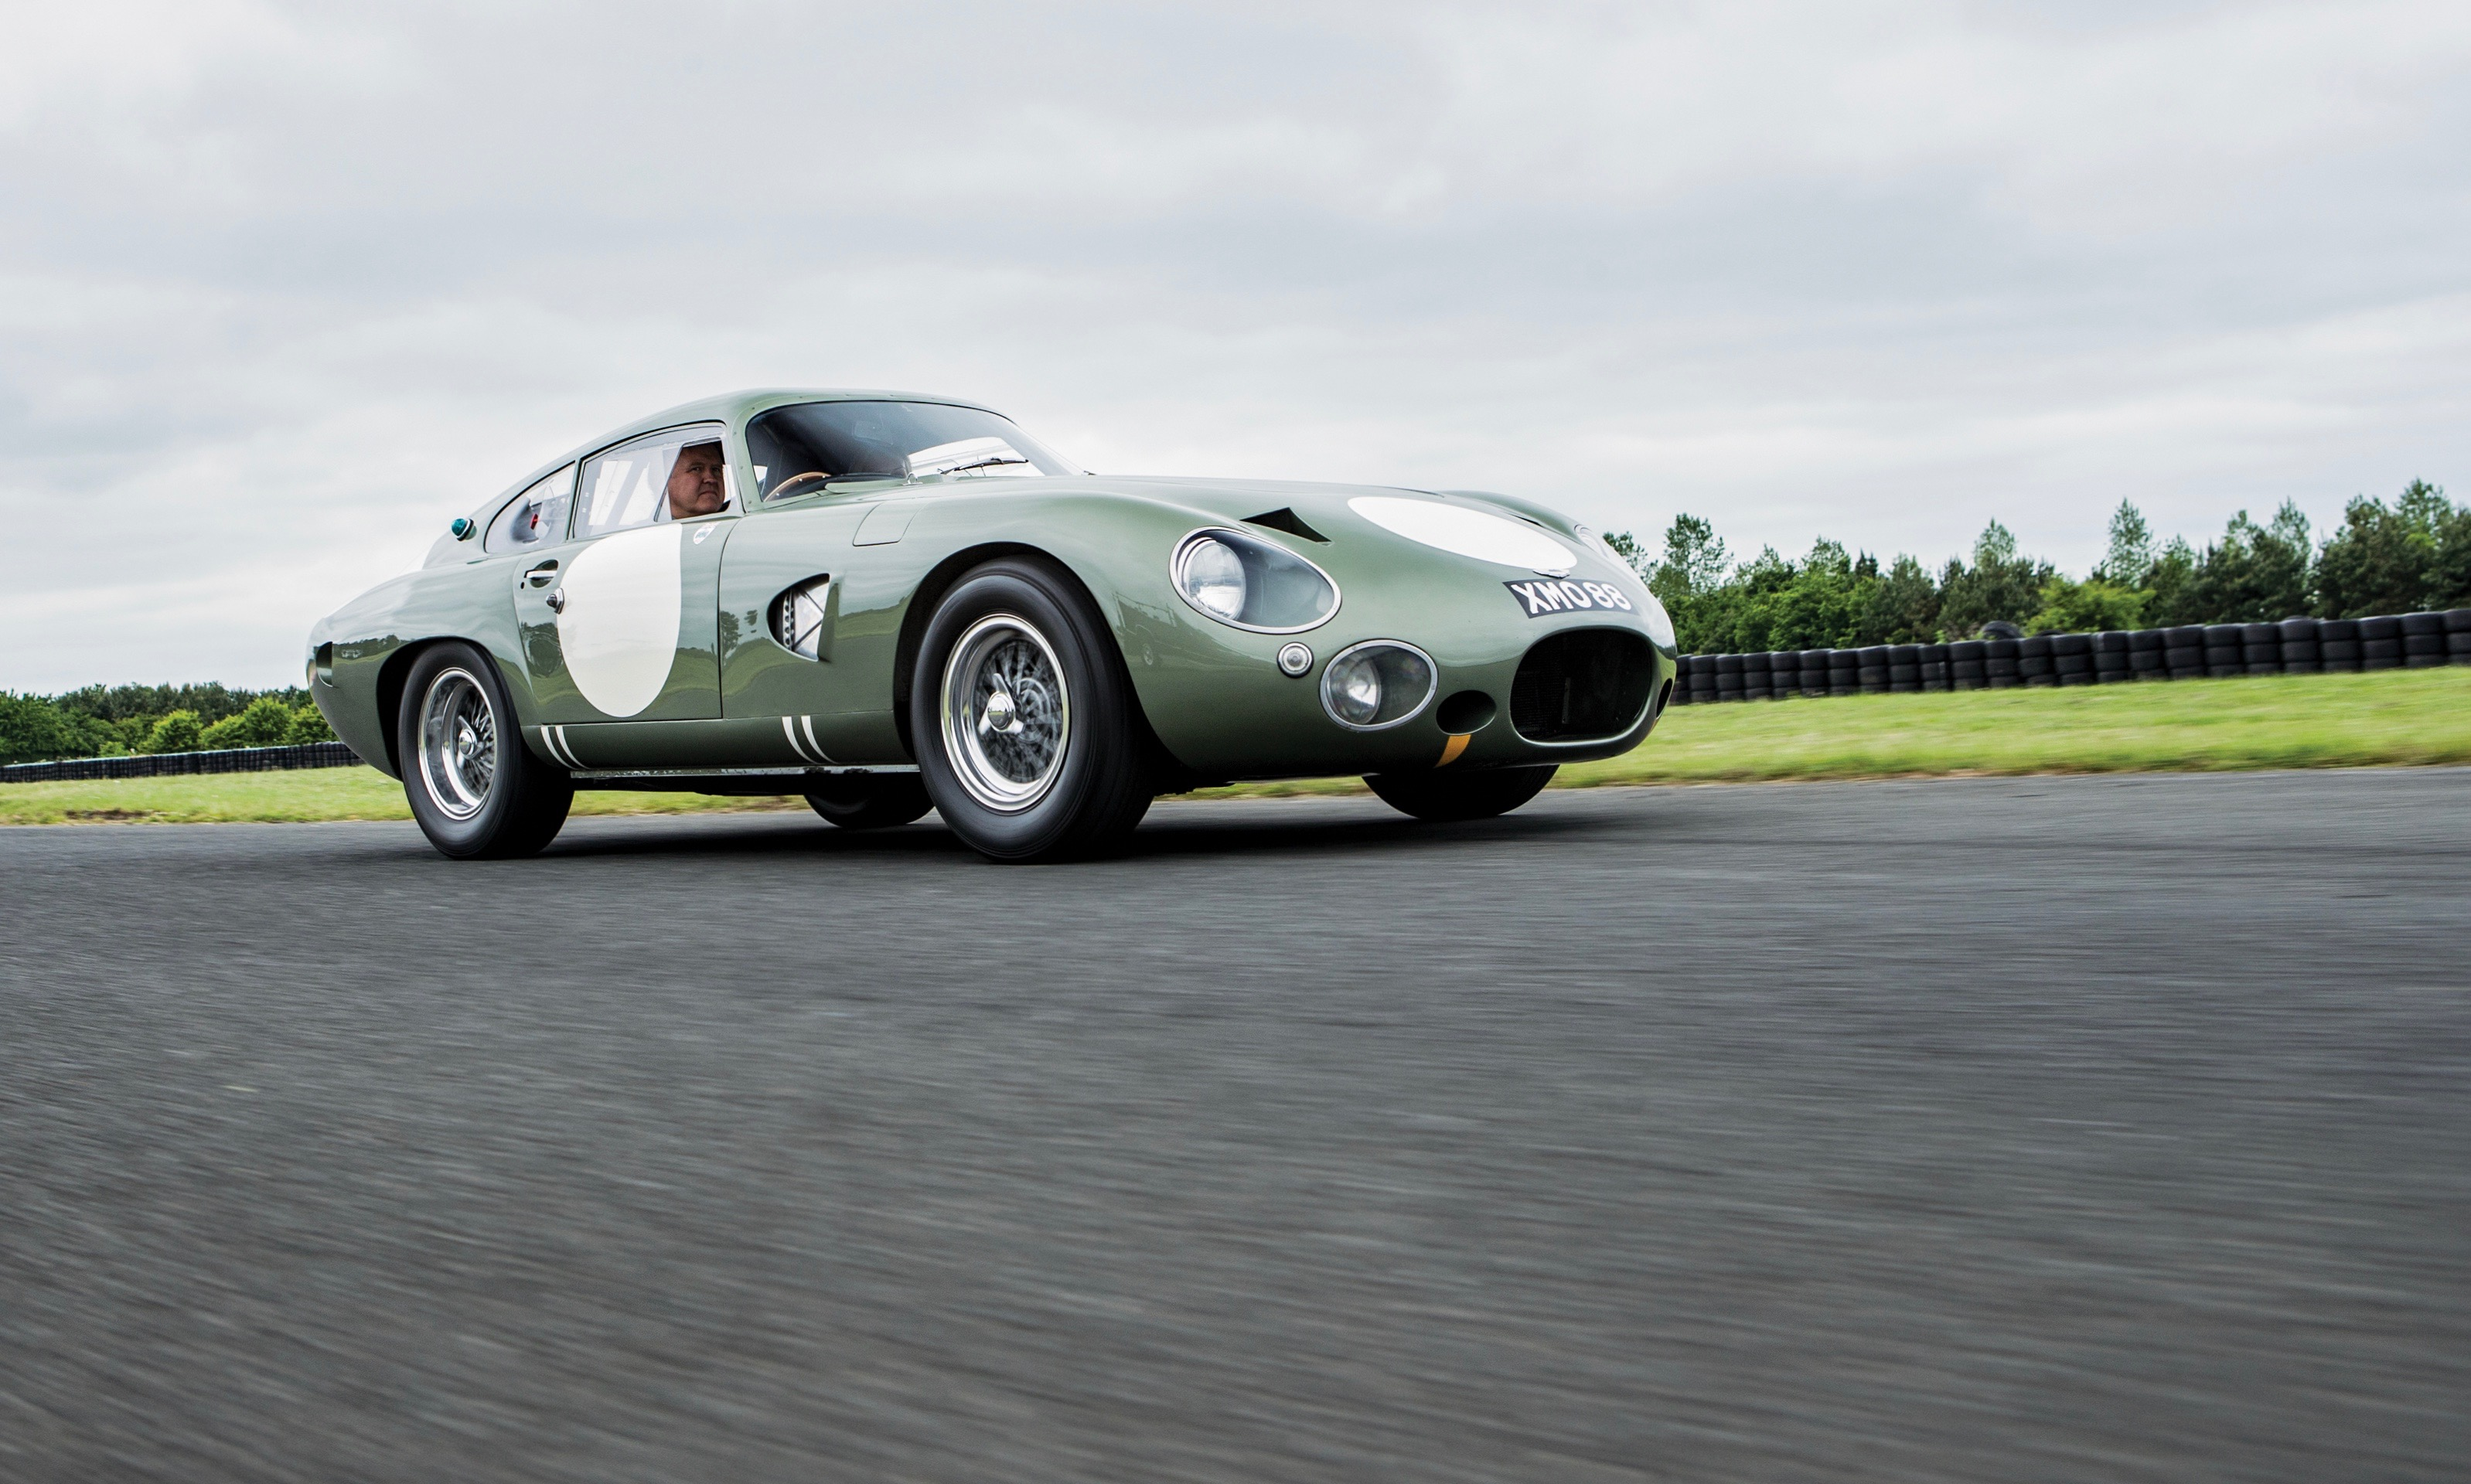 Monterey auctions, Record-breaking 1963 Aston Martin Le Mans racer joins RM Sotheby's Monterey docket, ClassicCars.com Journal